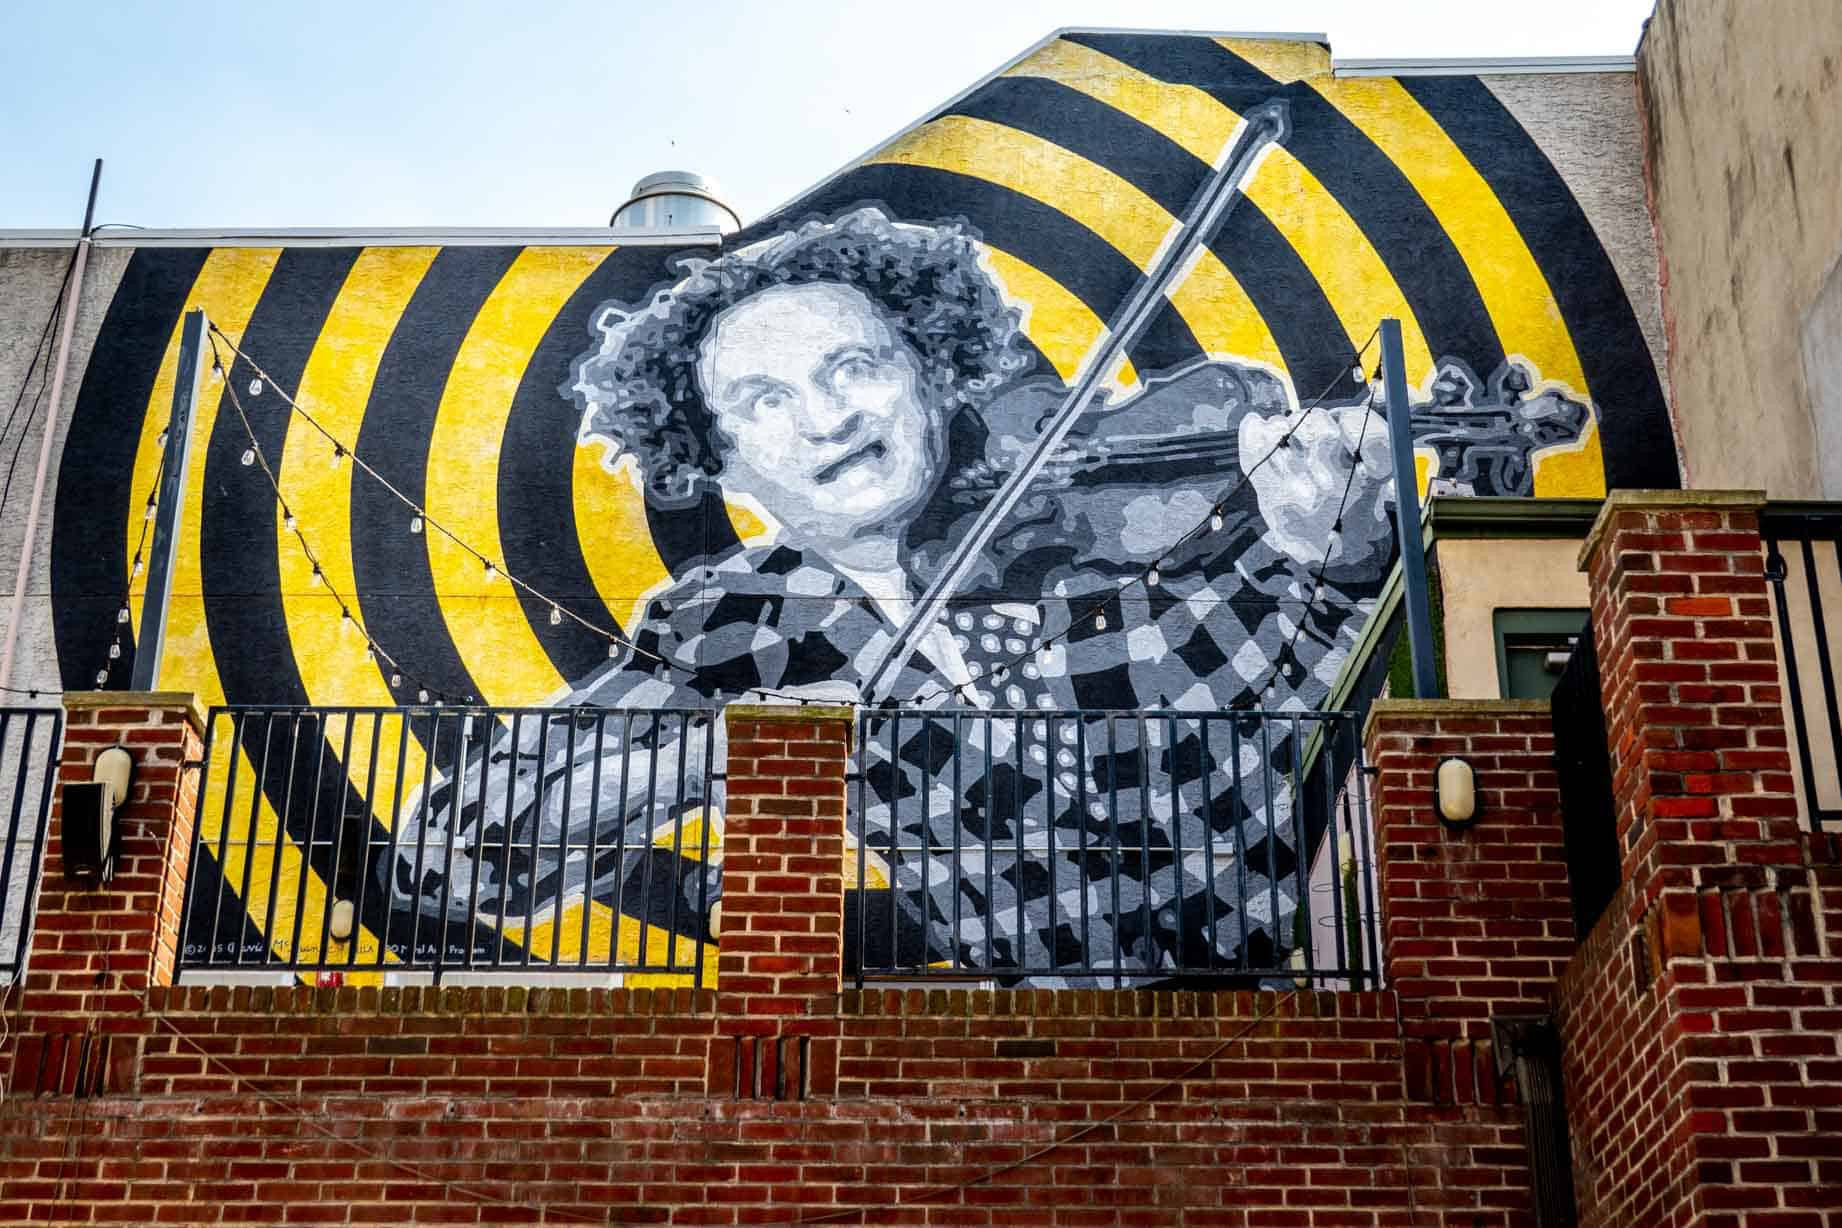 Mural of Larry Fine playing violin on wall on South Street above his boyhood home